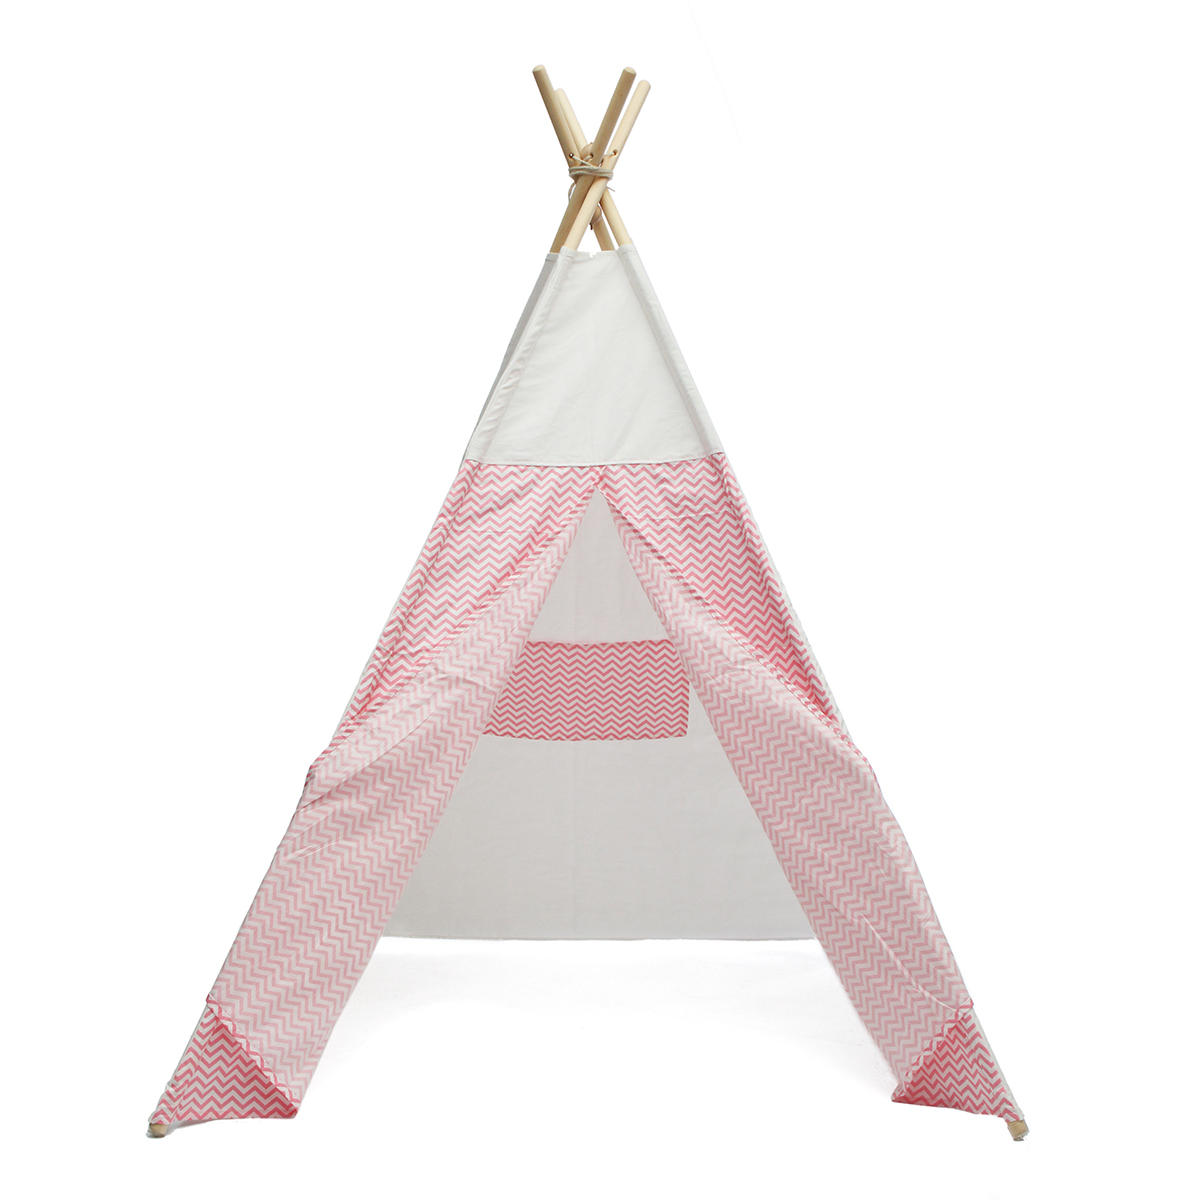 Teepee Kids Indoor Children Kids Play Tent Teepee Playhouse Sleeping Dome Toys Castle Cubby